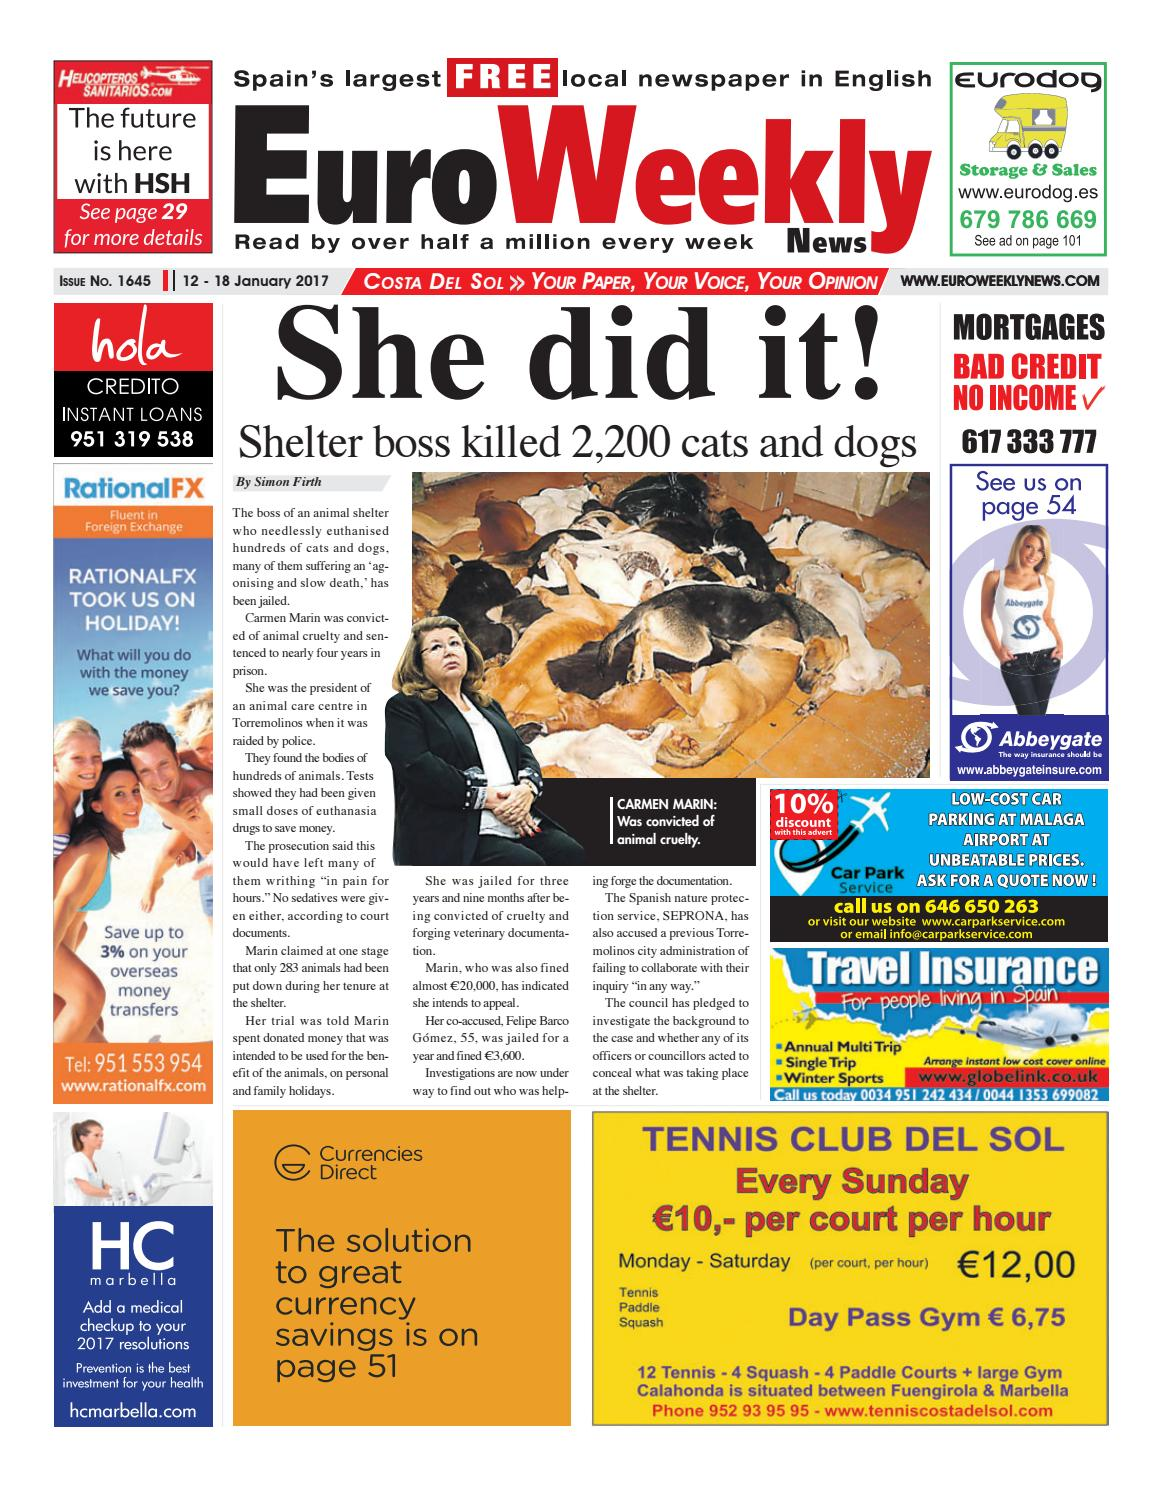 e73dca5be Euro Weekly News - Costa del Sol 12 - 18 January 2017 Issue 1645 by Euro  Weekly News Media S.A. - issuu